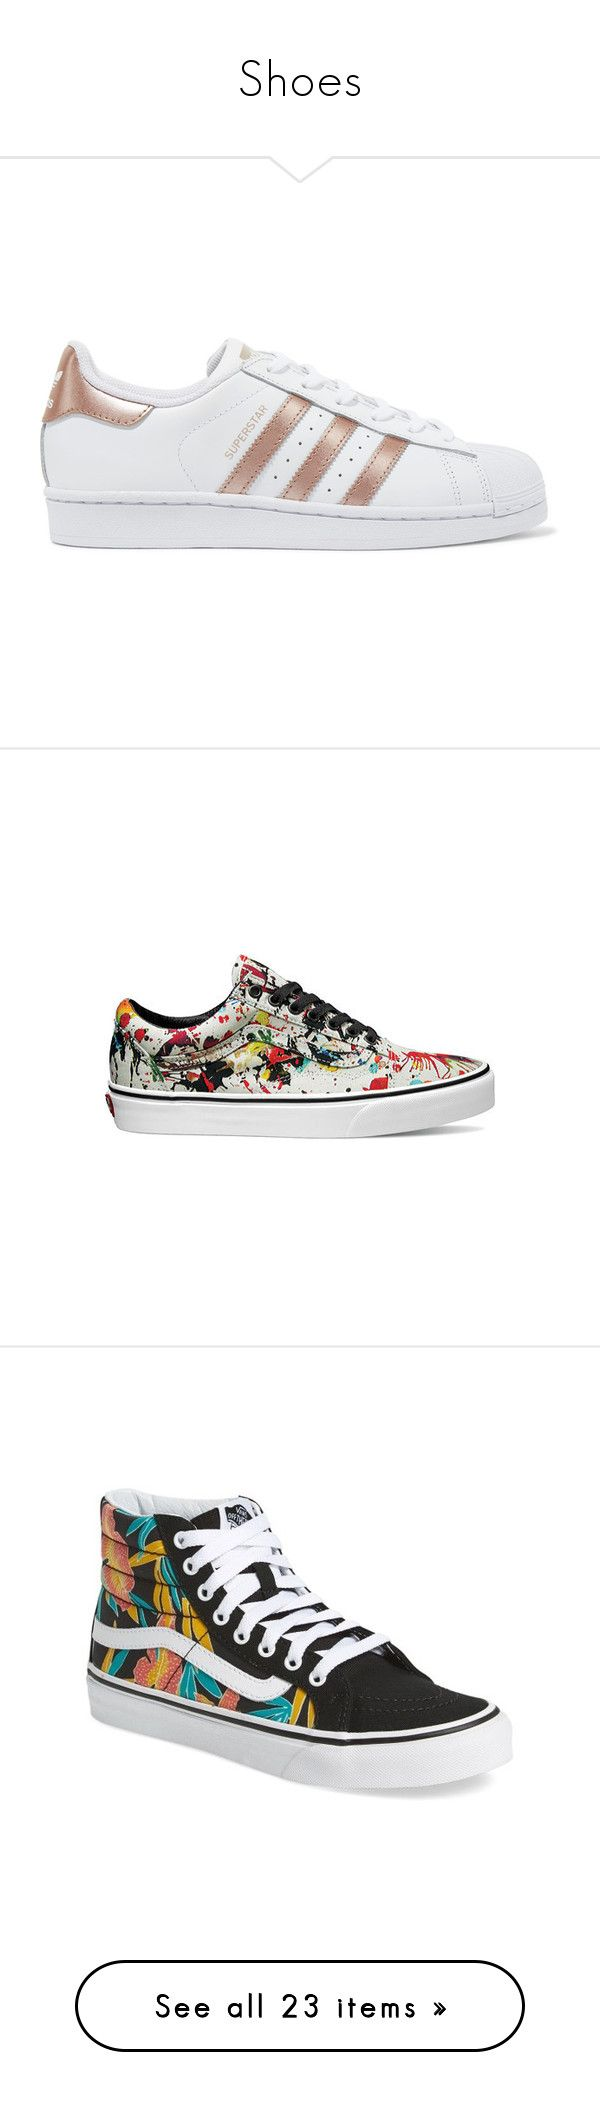 Shoes by ashykneesallison on Polyvore featuring polyvore, women's fashion, shoes, sneakers, adidas, lacing sneakers, leather sneakers, adidas originals sneakers, white lace up sneakers, white lace up shoes, sapatos, zapatillas, floral print shoes, sports shoes, leather low top sneakers, sport sneakers, sport shoes, casual footwear, casual shoes, black sneakers, black white shoes, white trainers, canvas sneakers, tropical leaves black, high top shoes, floral sneakers, black high top sneakers…